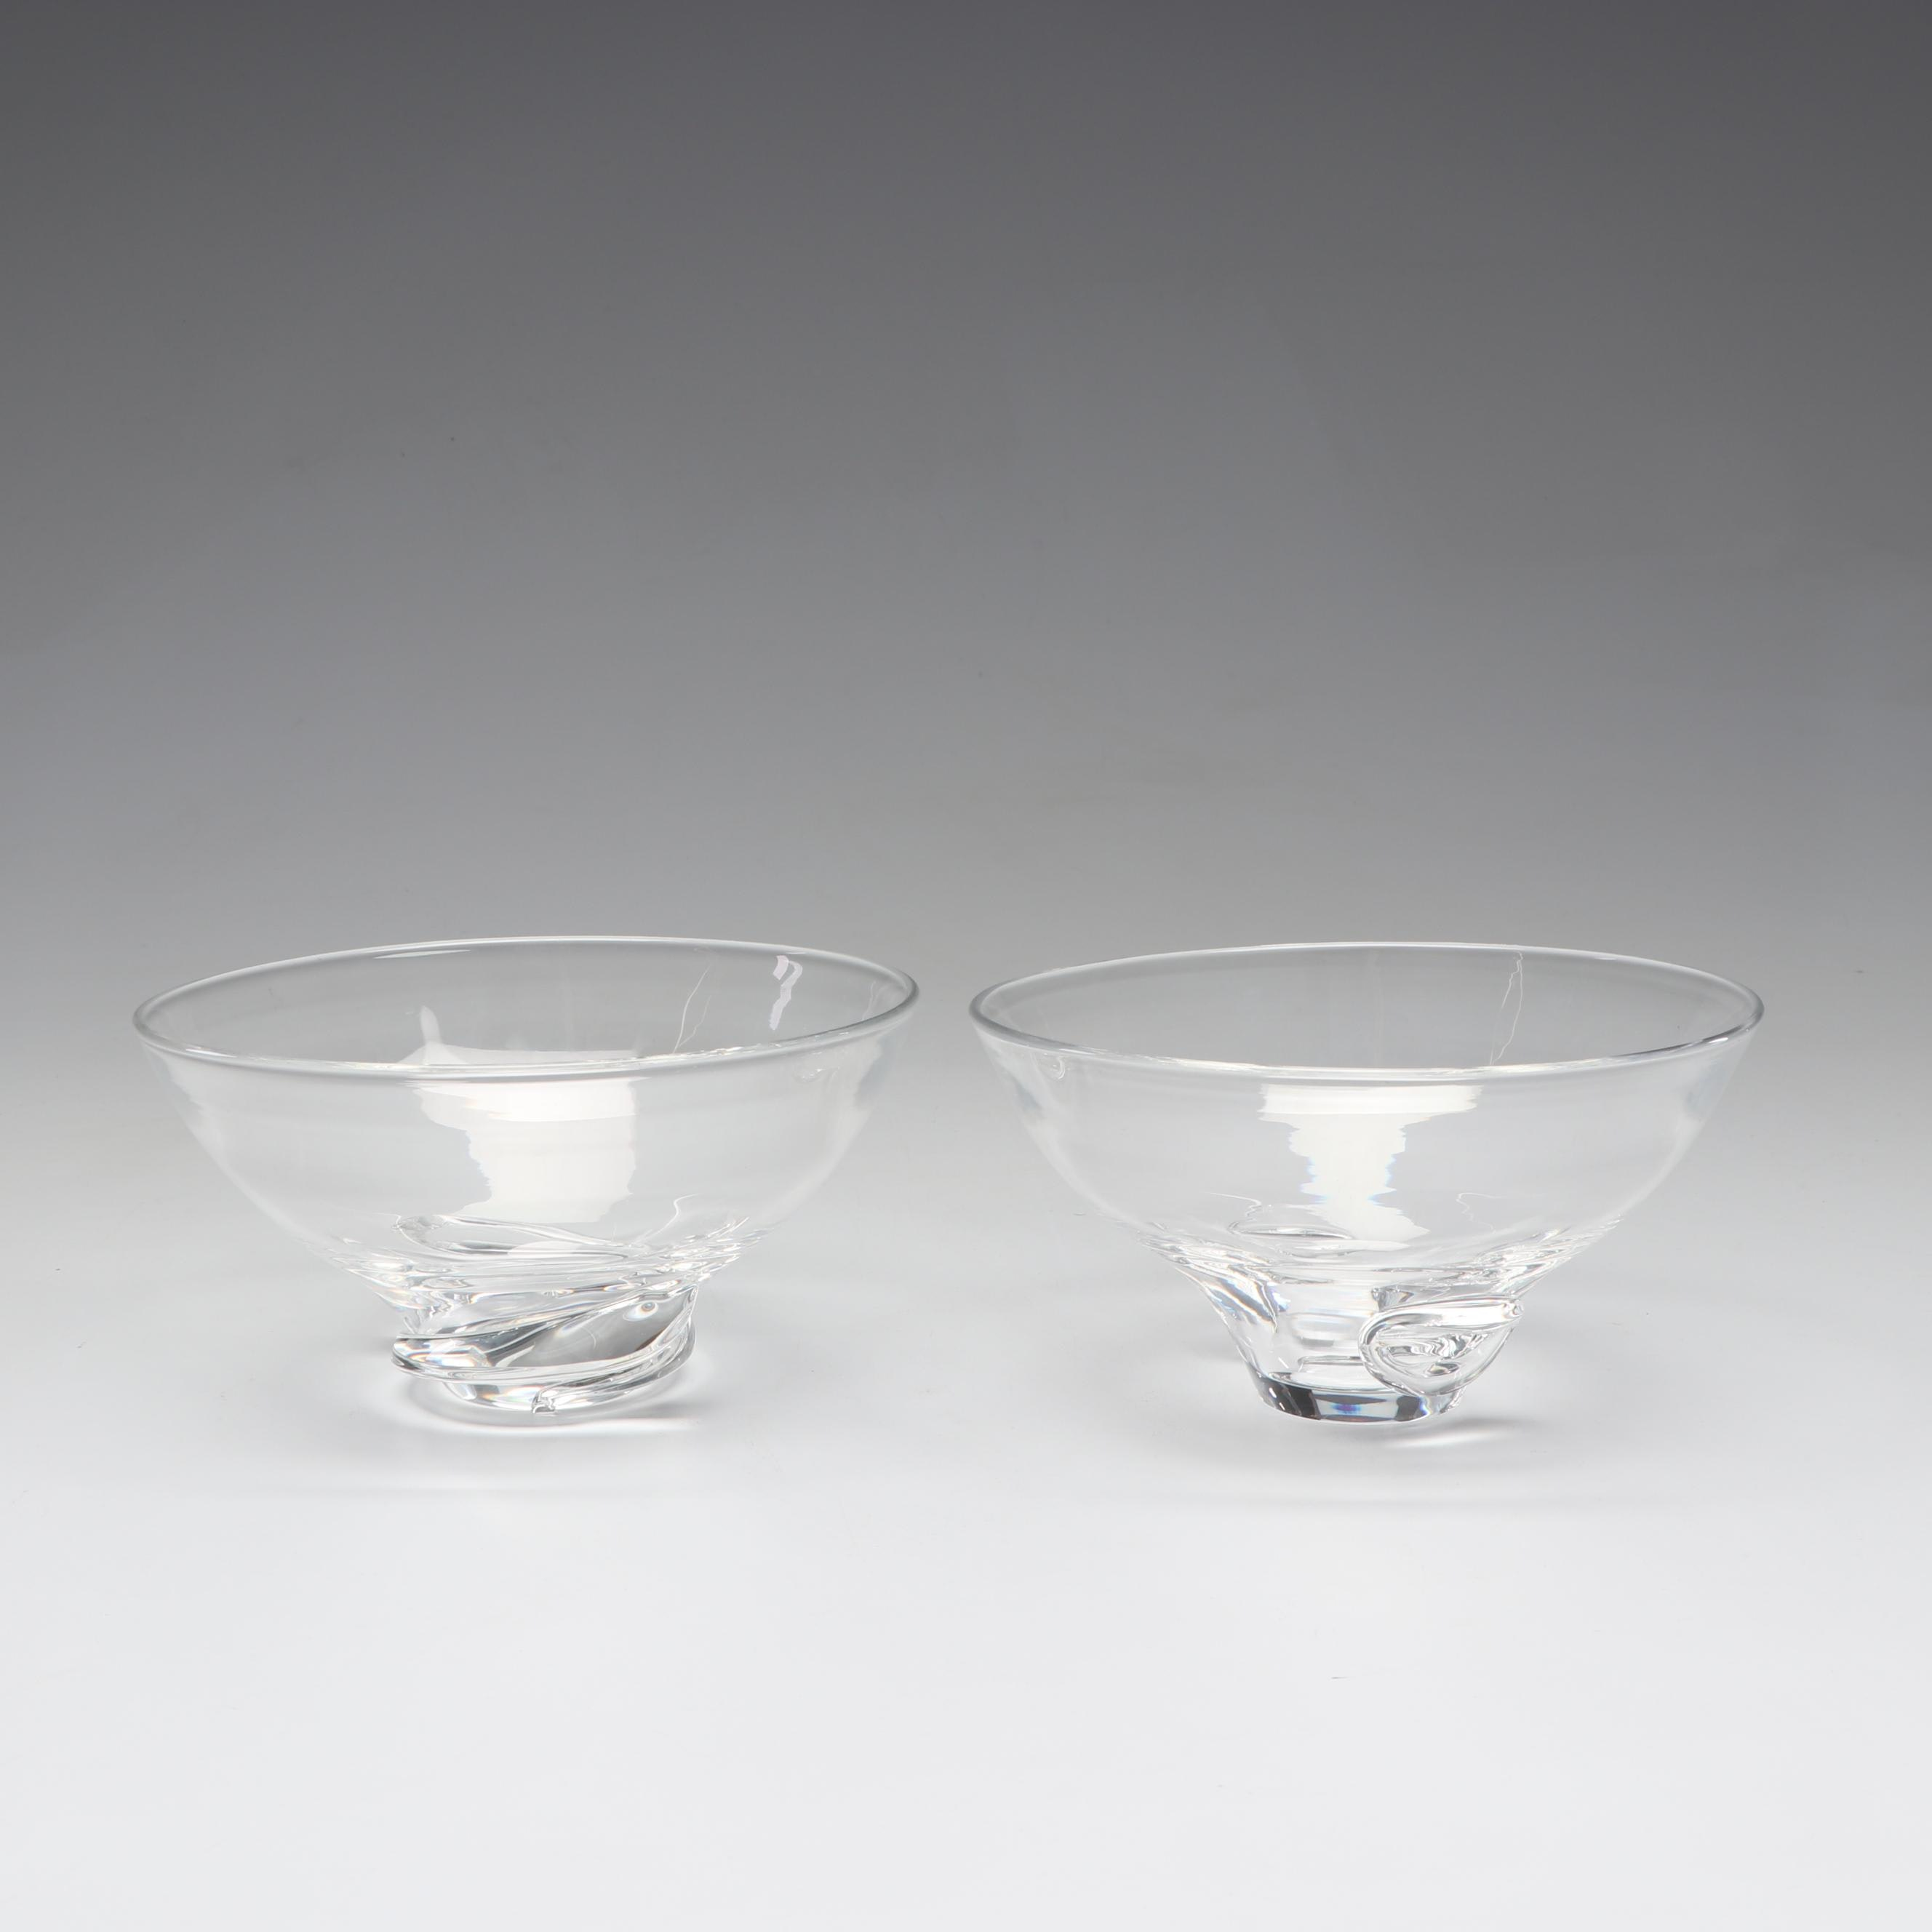 Steuben Spiral and Bouquet Crystal Bowls